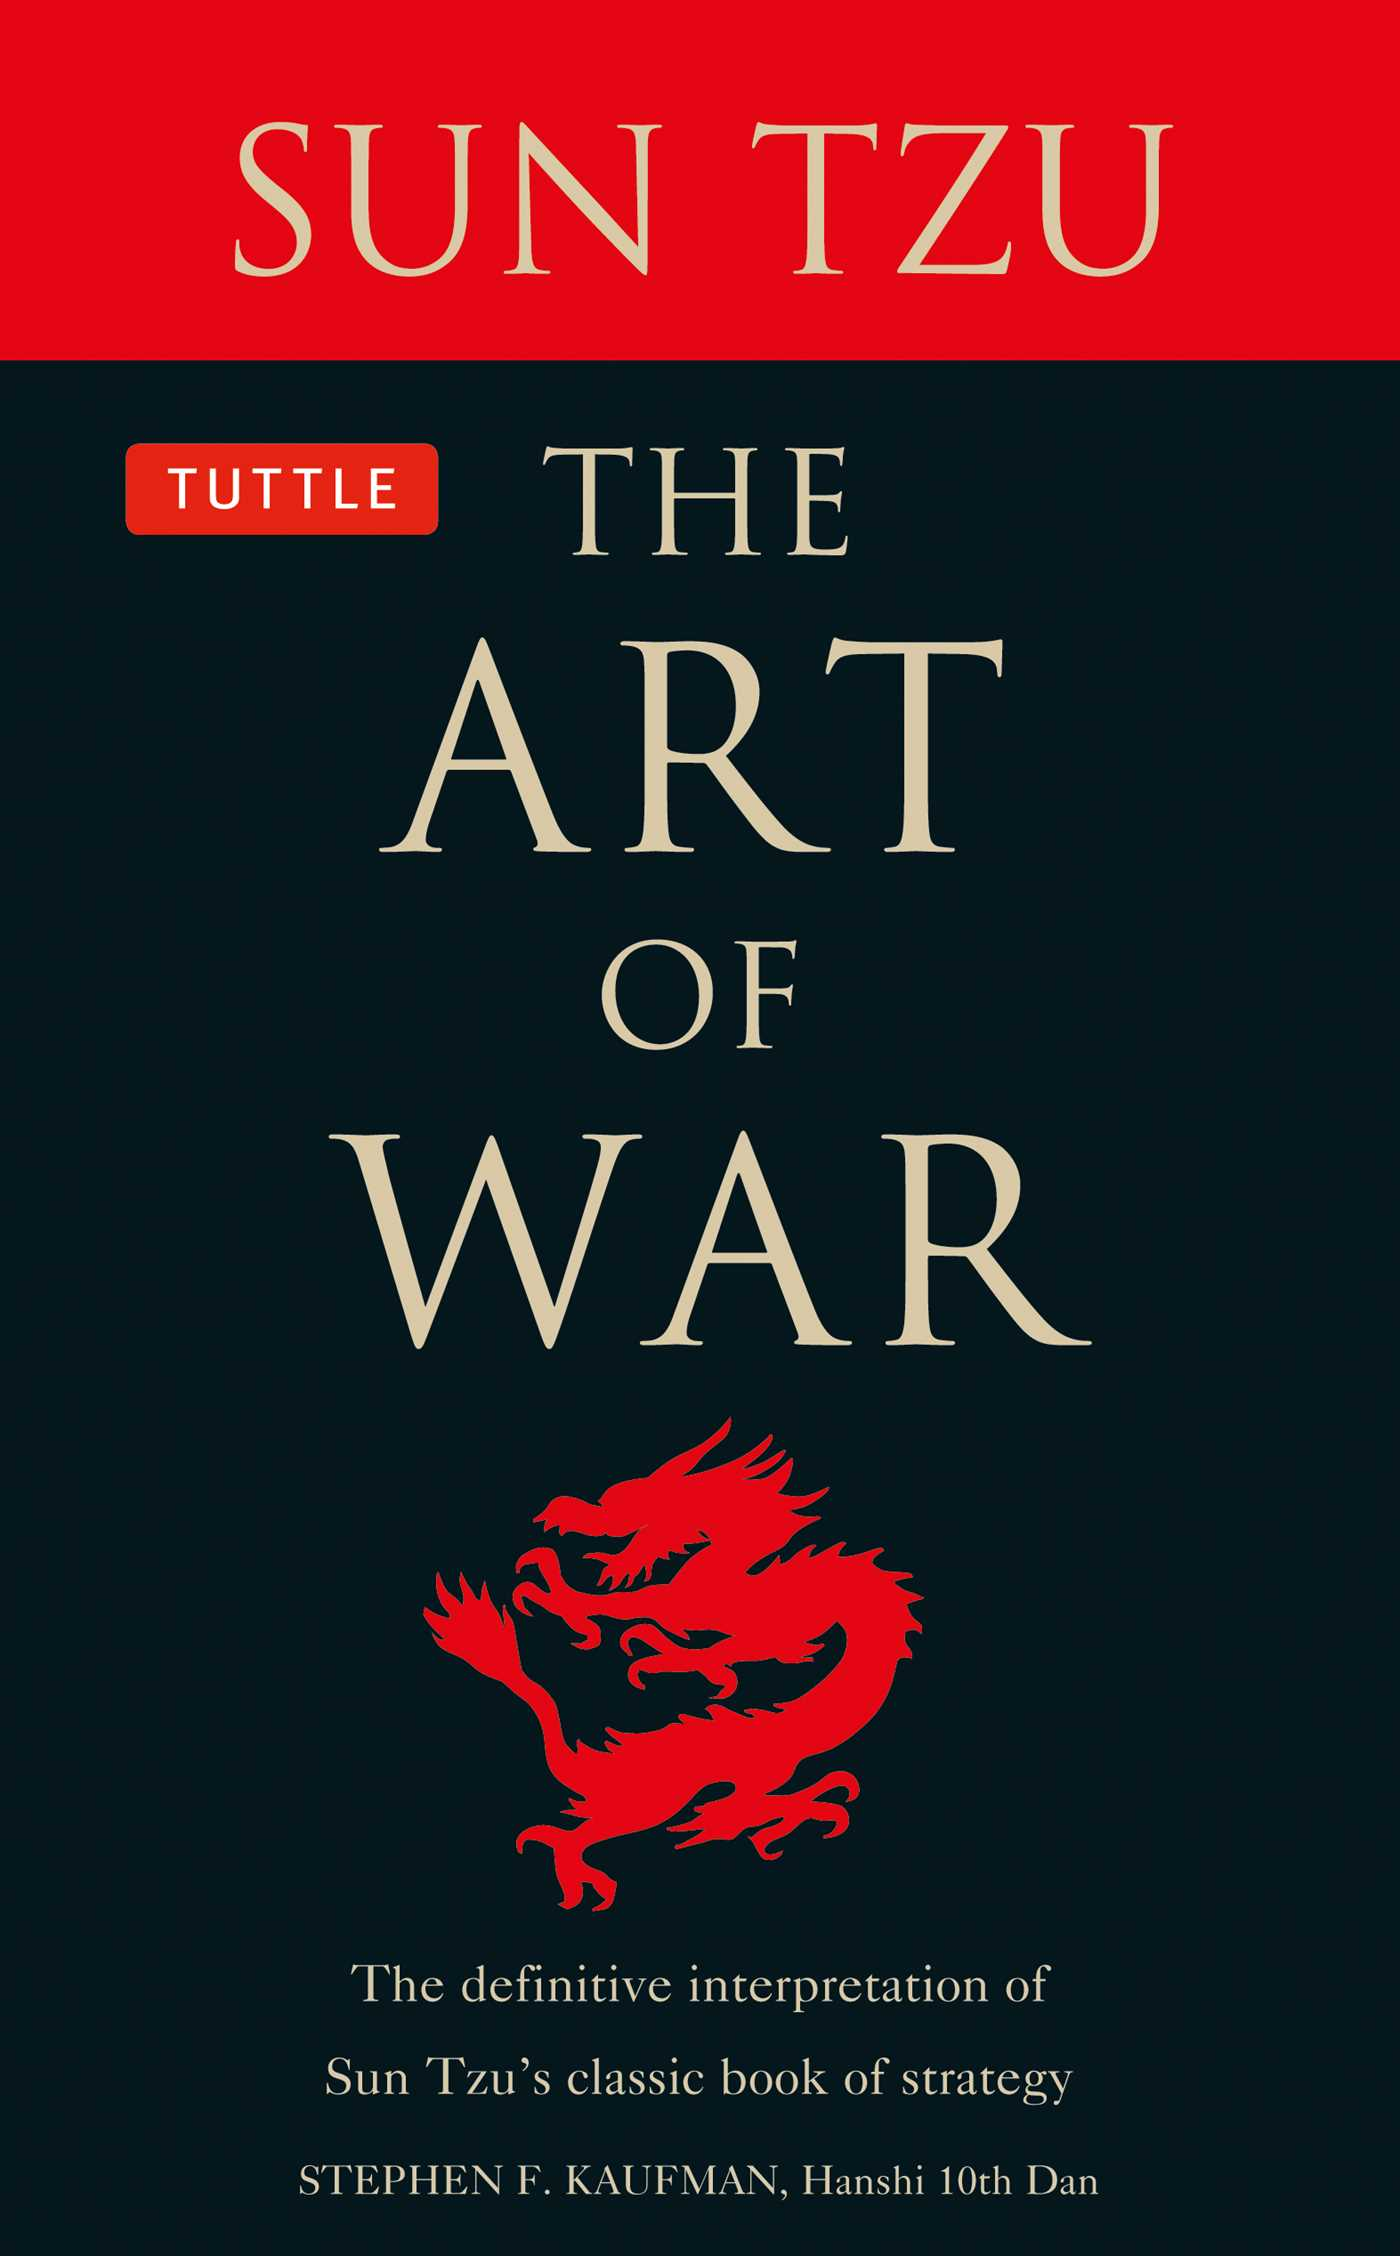 The-art-of-war-9780804830805_hr